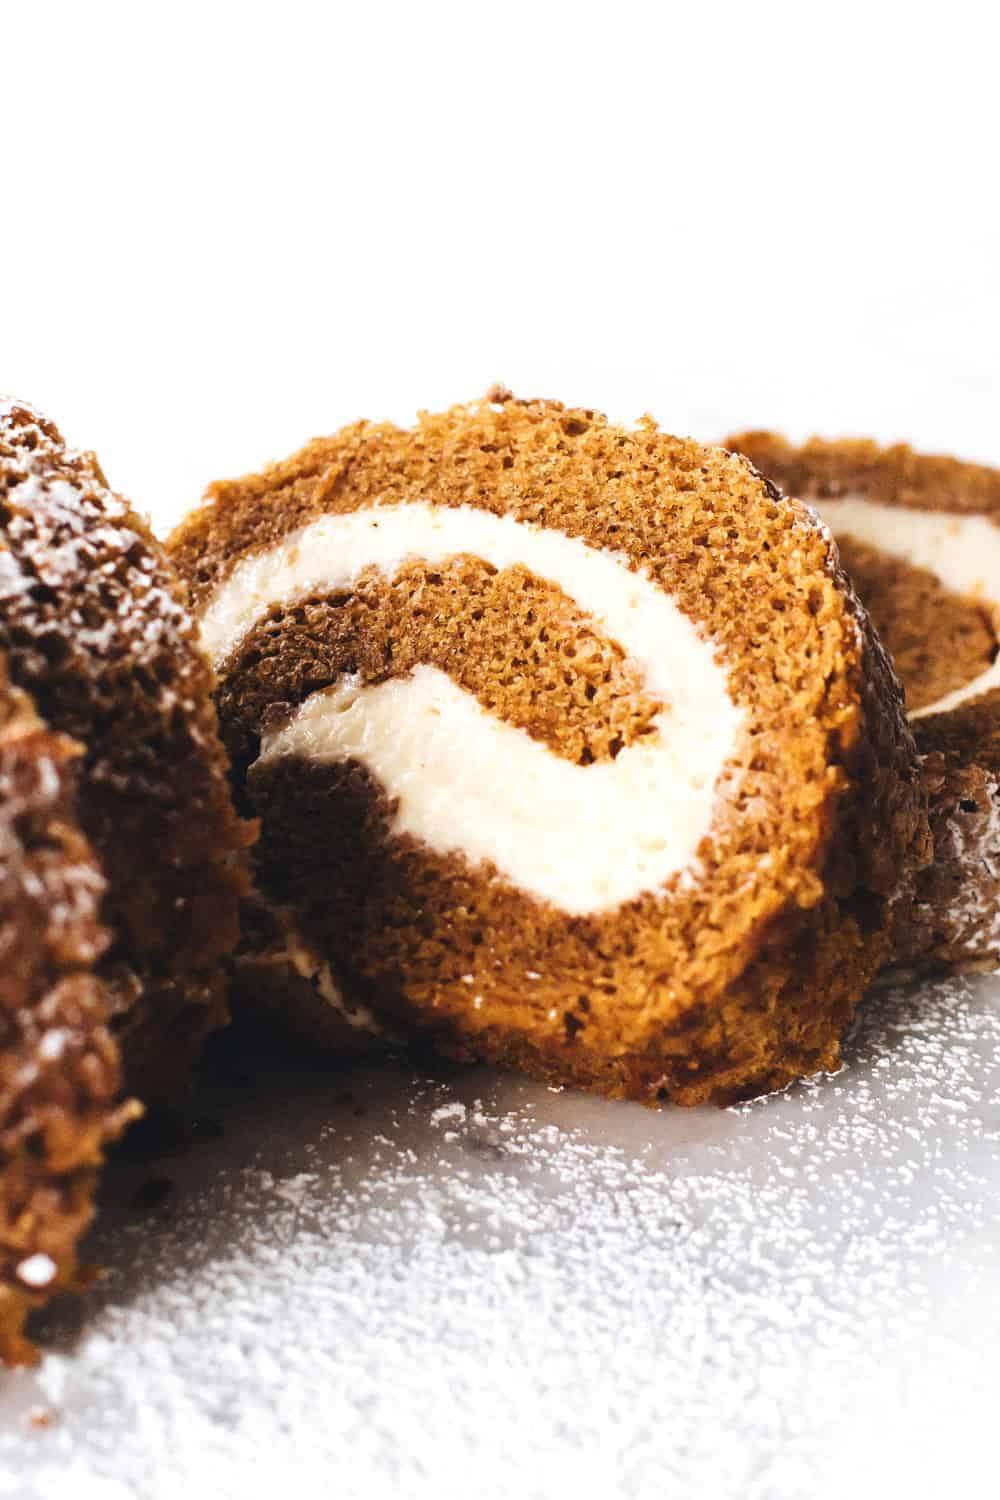 This pumpkin roll recipe is the perfect dessert to keep in the freezer for unexpected holiday guests.